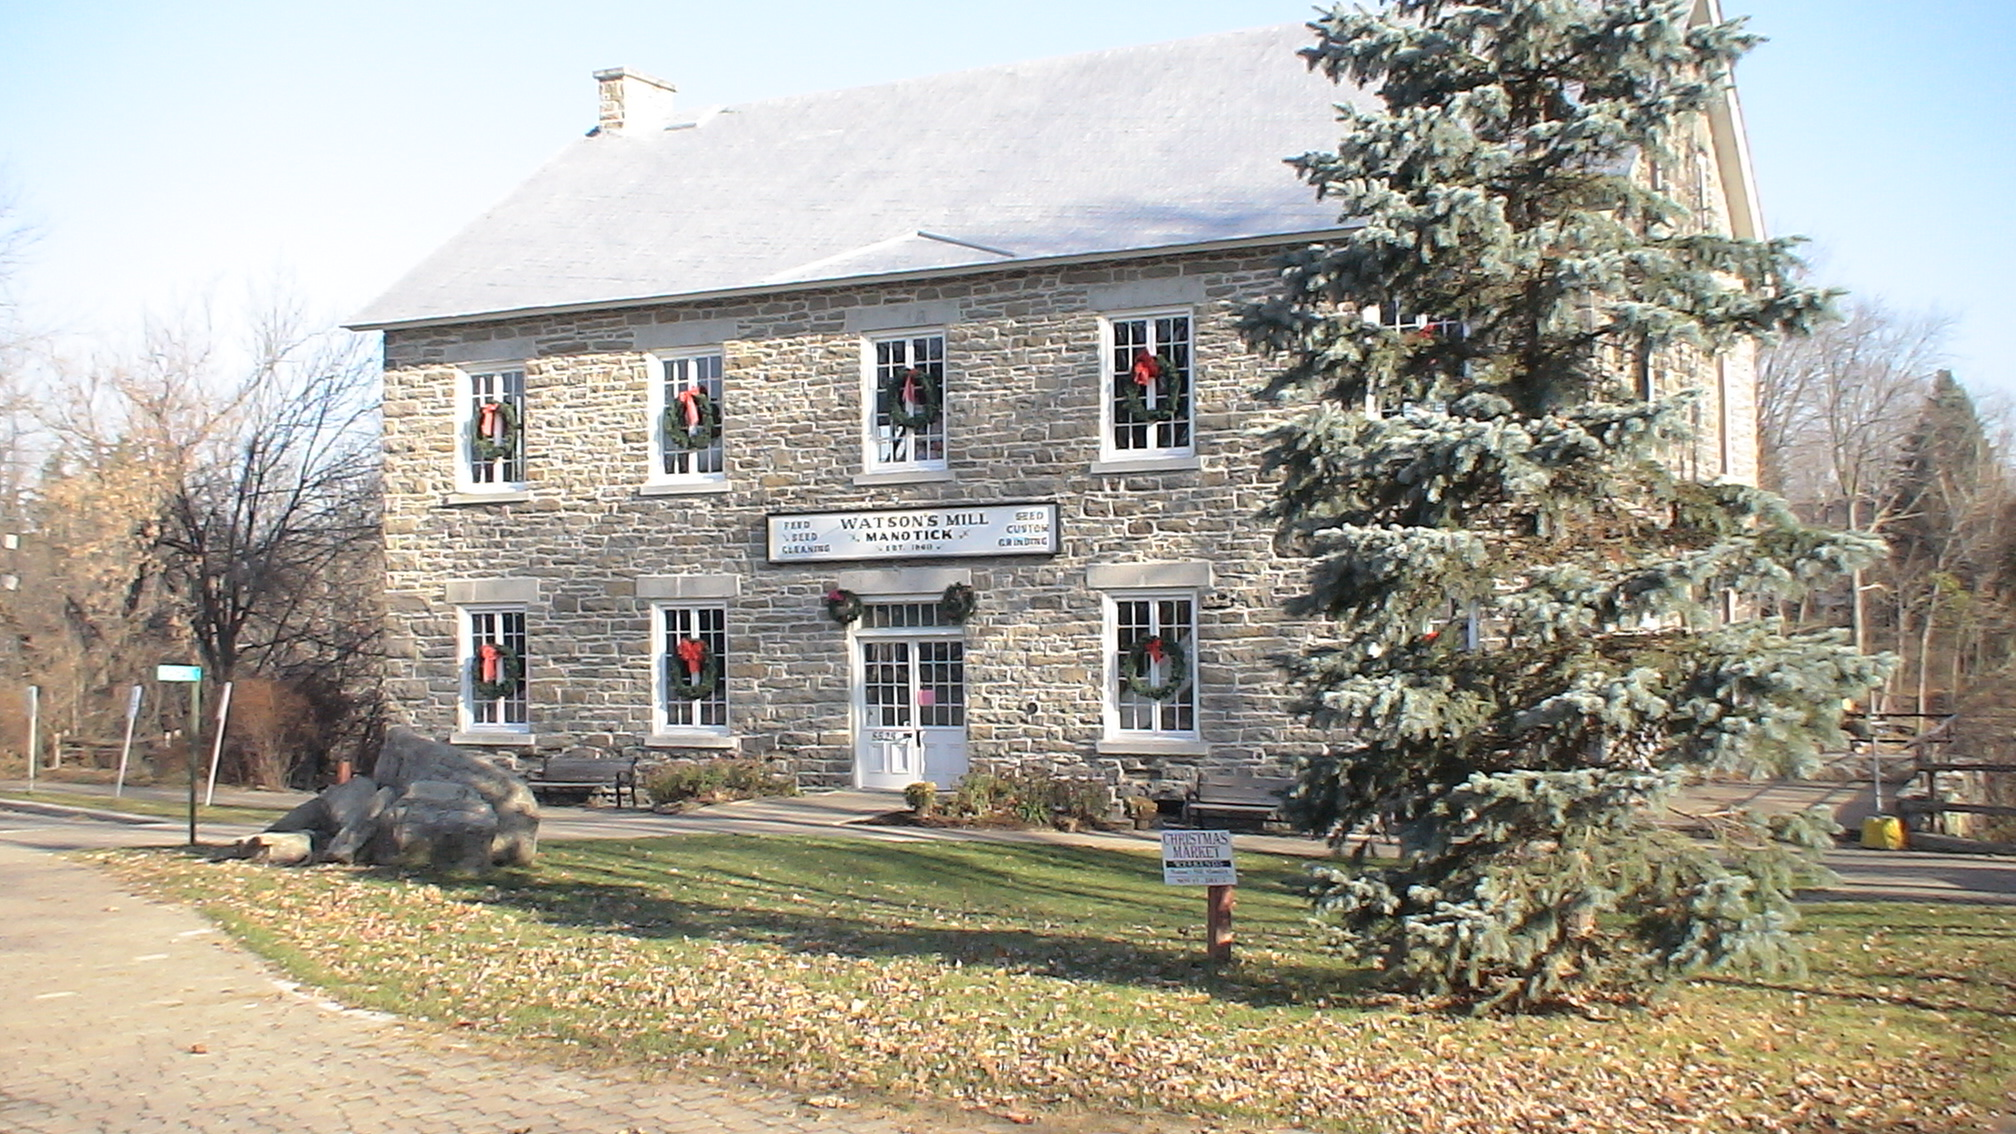 Watson's Mill in Manotick, near Ottawa